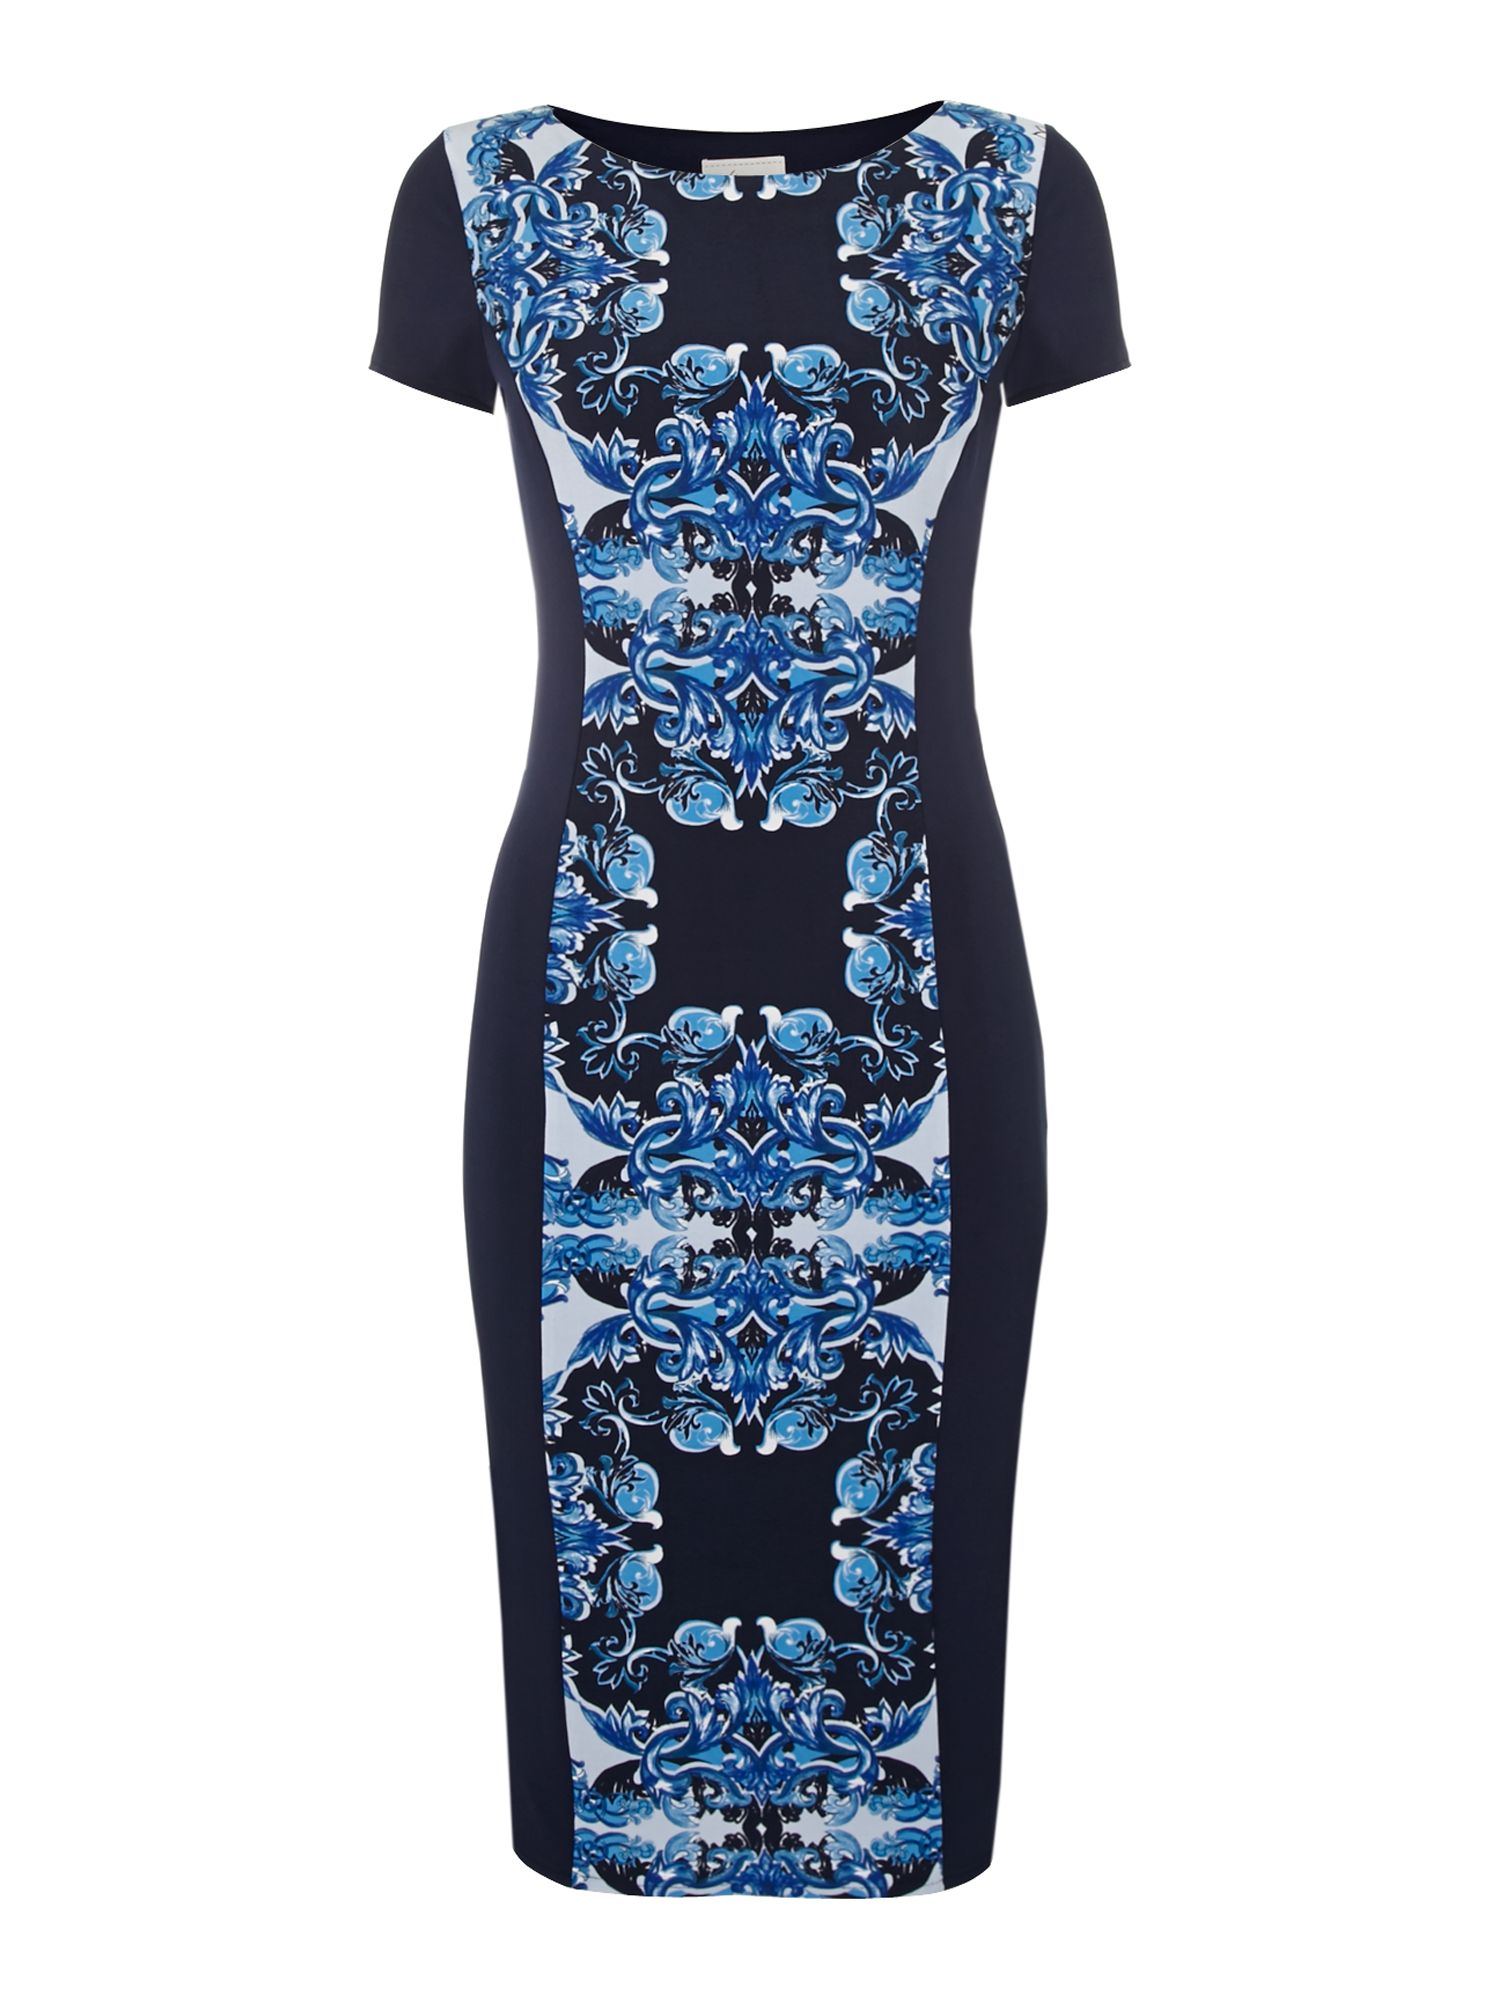 Ornate bodycon dress